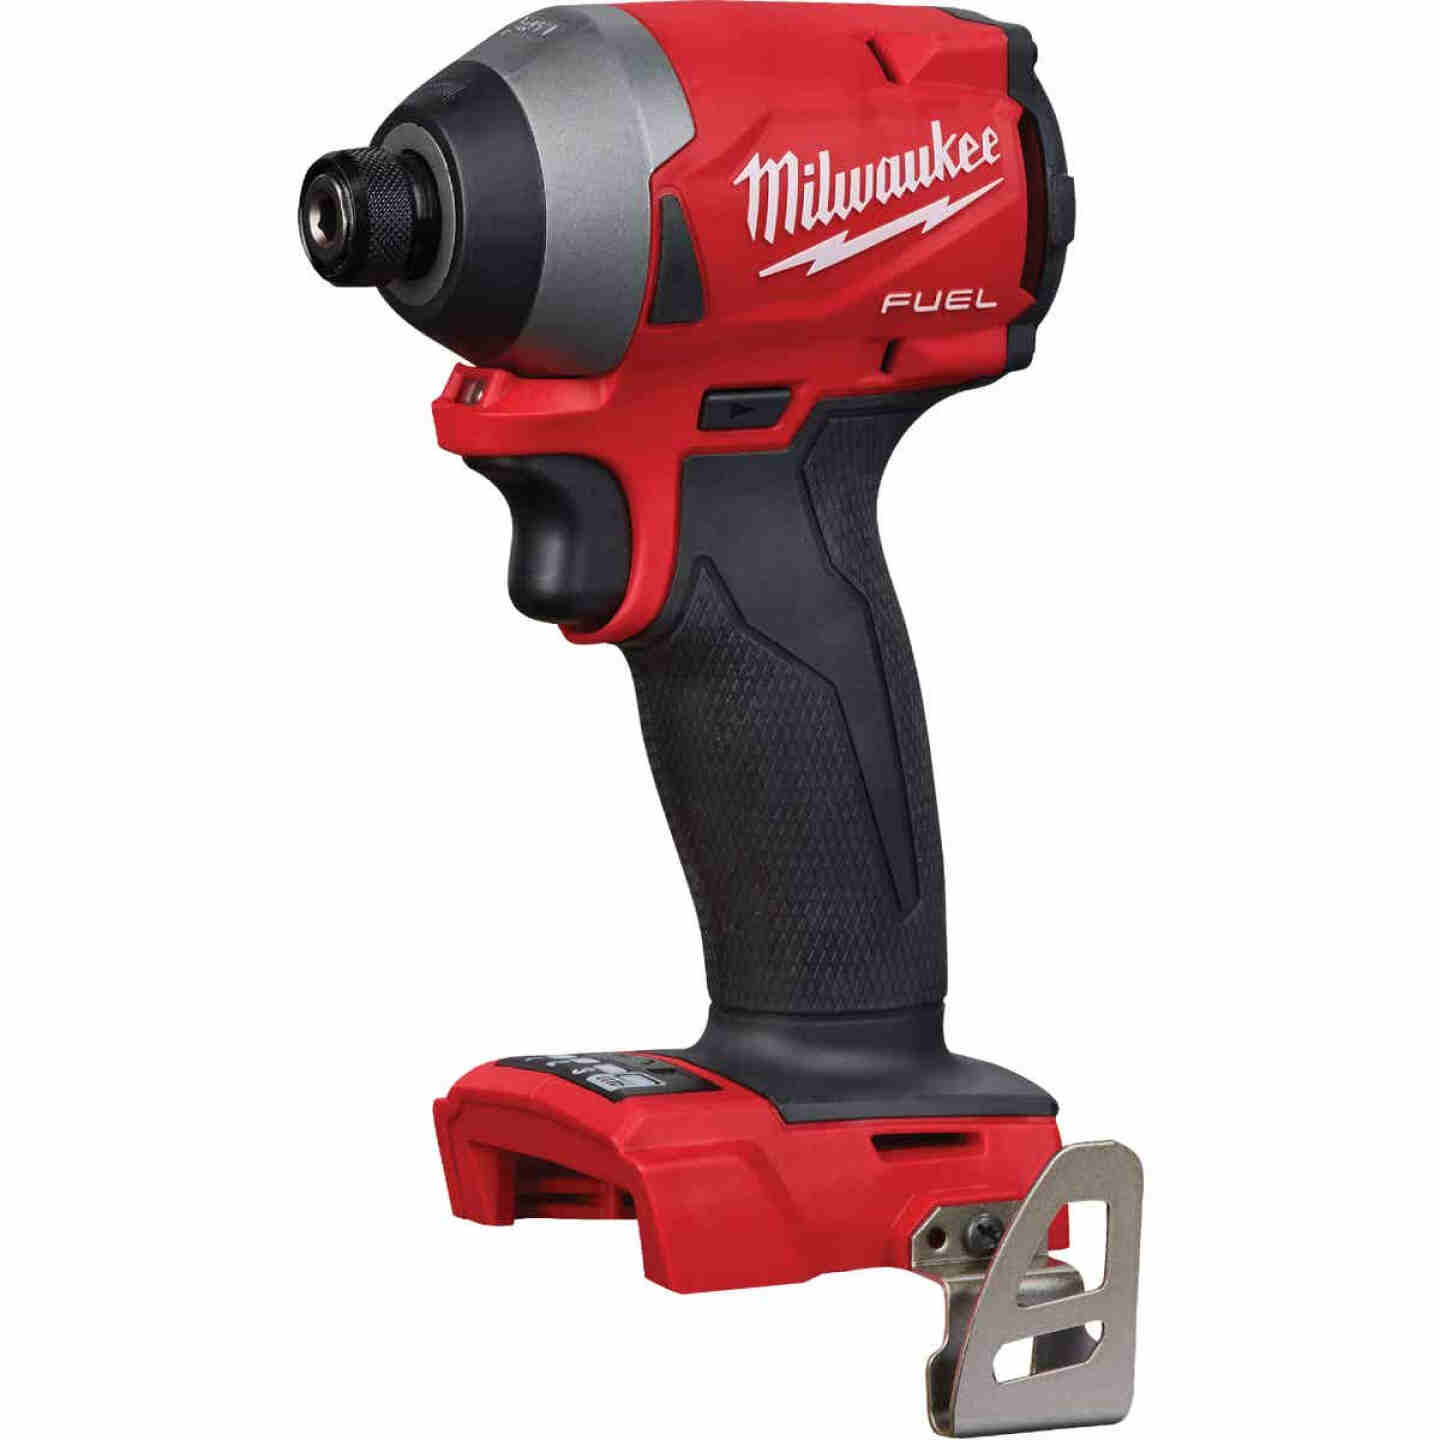 Milwaukee M18 FUEL 18 Volt Lithium-Ion Brushless 1/4 In. Hex Impact Driver (Bare Tool) Image 1